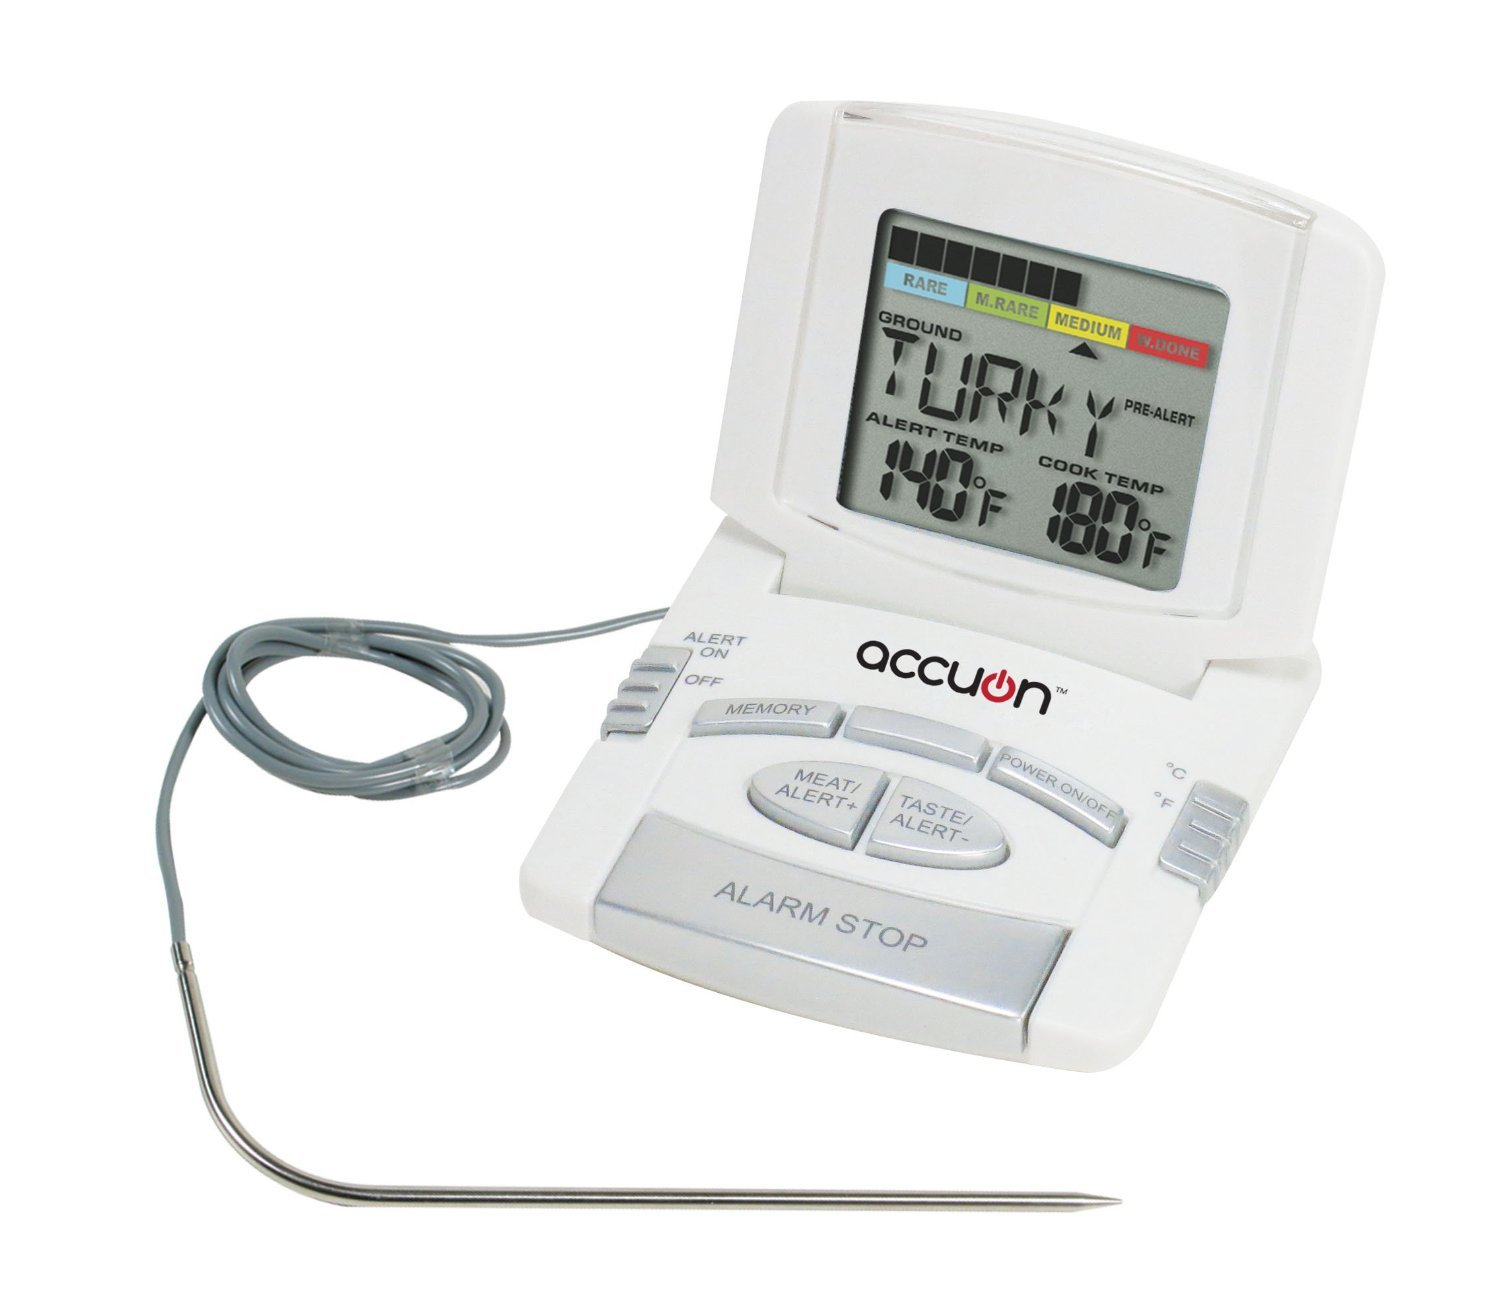 Accuon Digital Programmed Instant-read Cooking Thermometer with Probe ACU0202